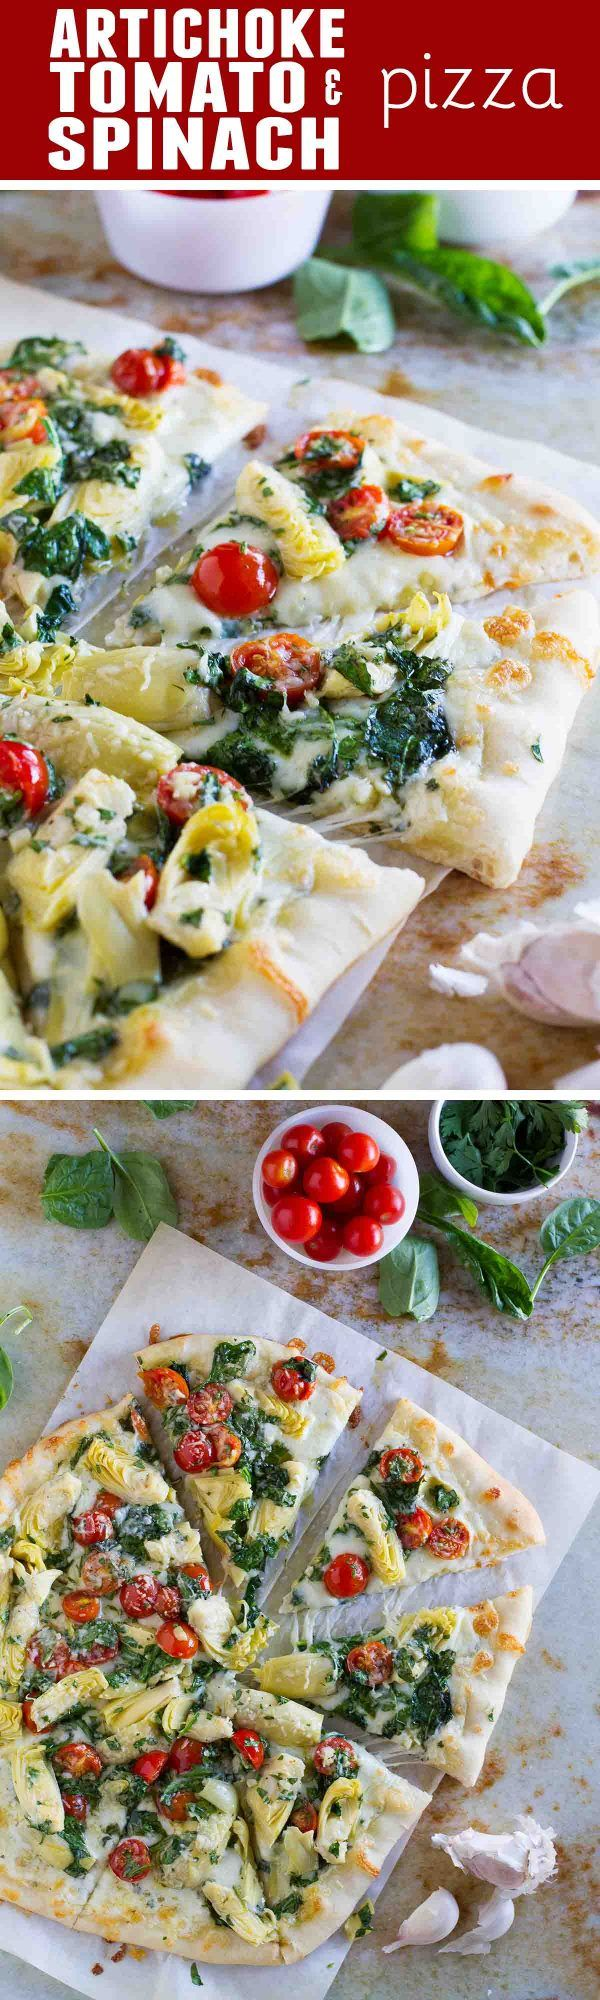 Artichoke lovers will fall in love with this Artichoke, Tomato and Spinach Pizza. It takes the classic spinach artichoke combination and turns it into an amazing pizza!